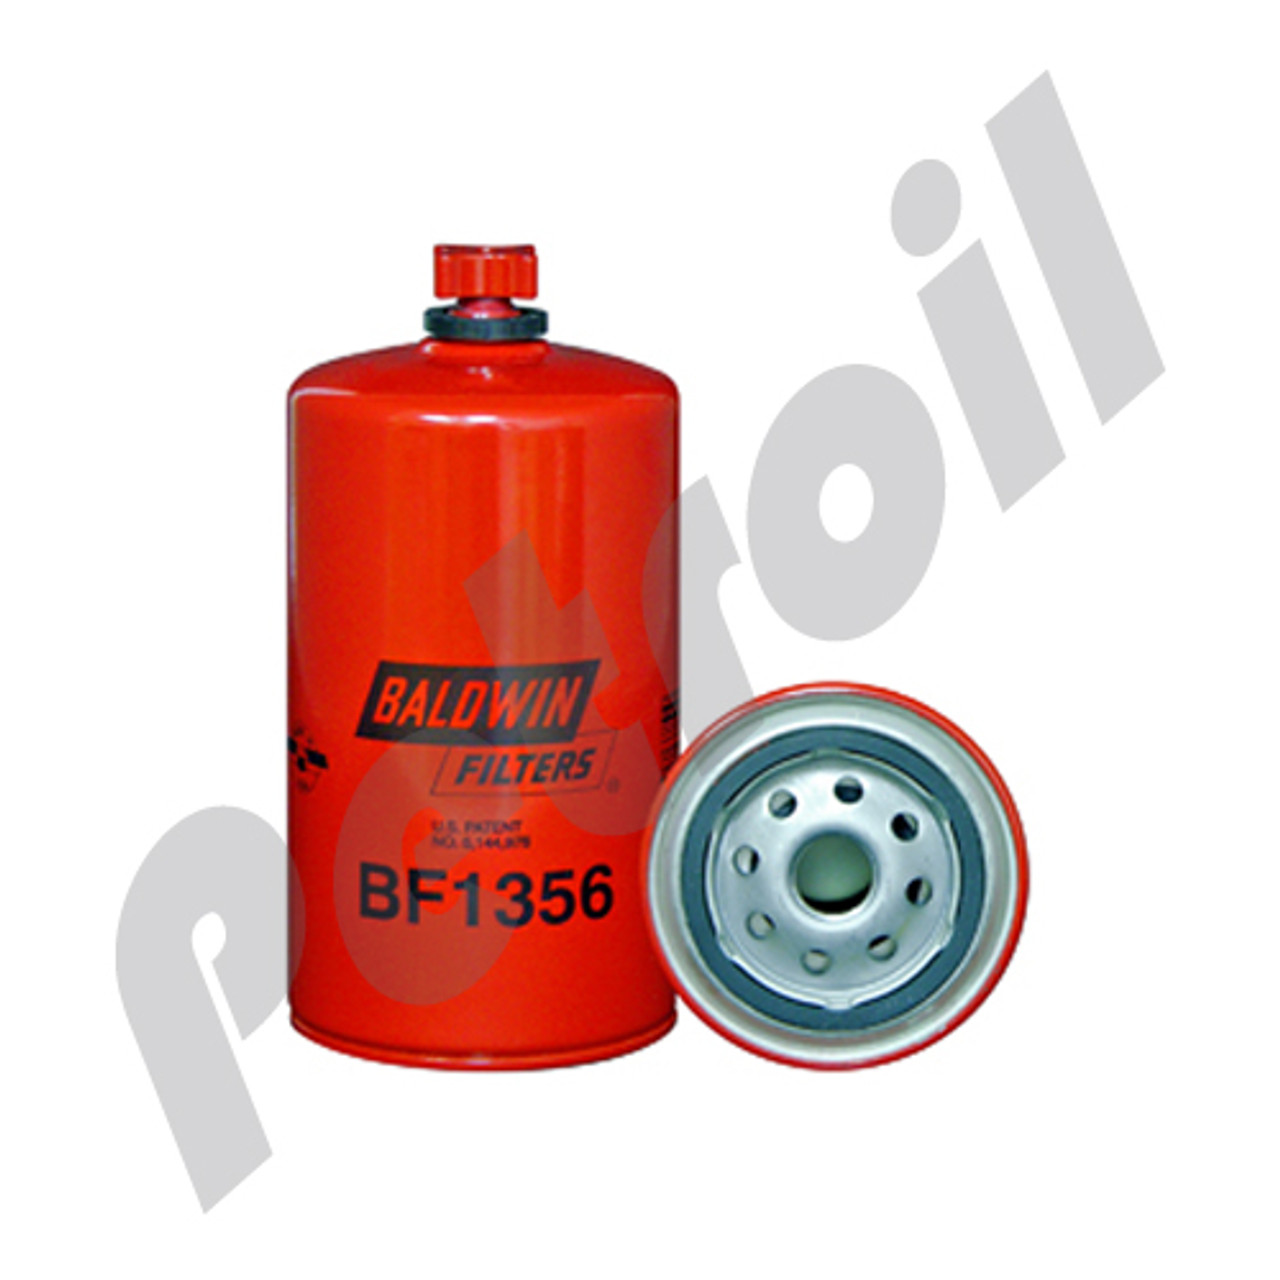 [DIAGRAM_34OR]  BF1356 Baldwin Fuel Filter w/Drain Cummins 3991350 FS19608 33722 P550899 JLG  7028838 | Jlg Fuel Filter |  | Petroil USA